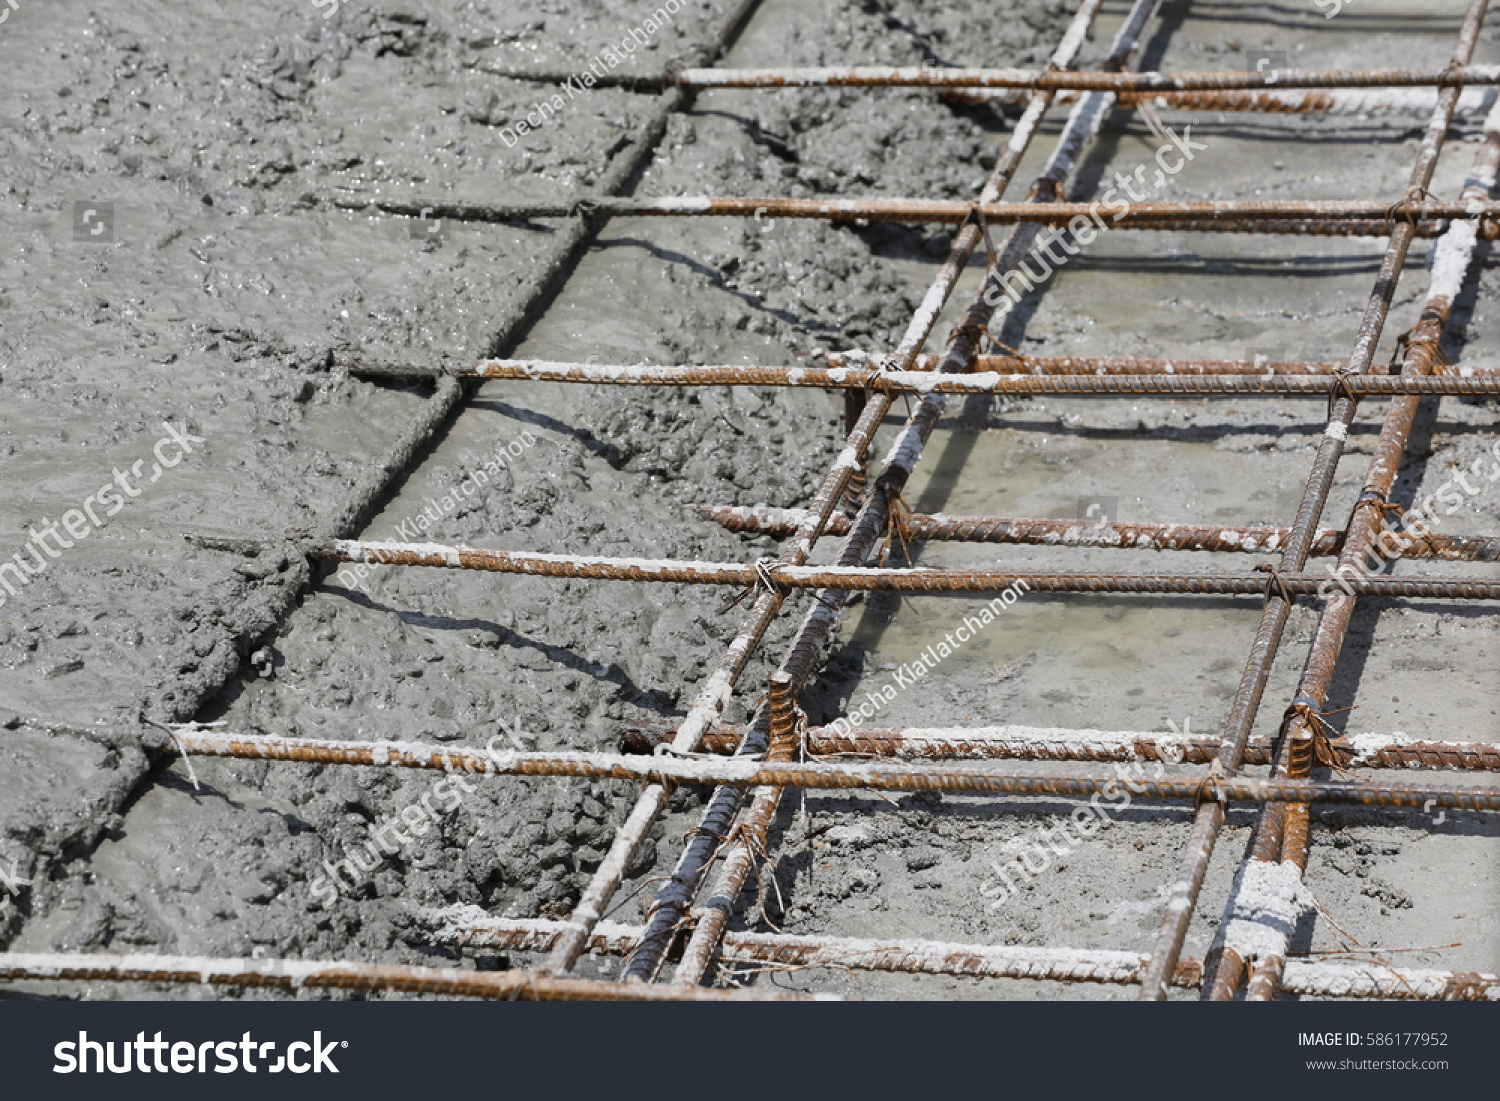 Wet Concrete Poured On Wire Mesh Stock Photo (Safe to Use) 586177952 ...